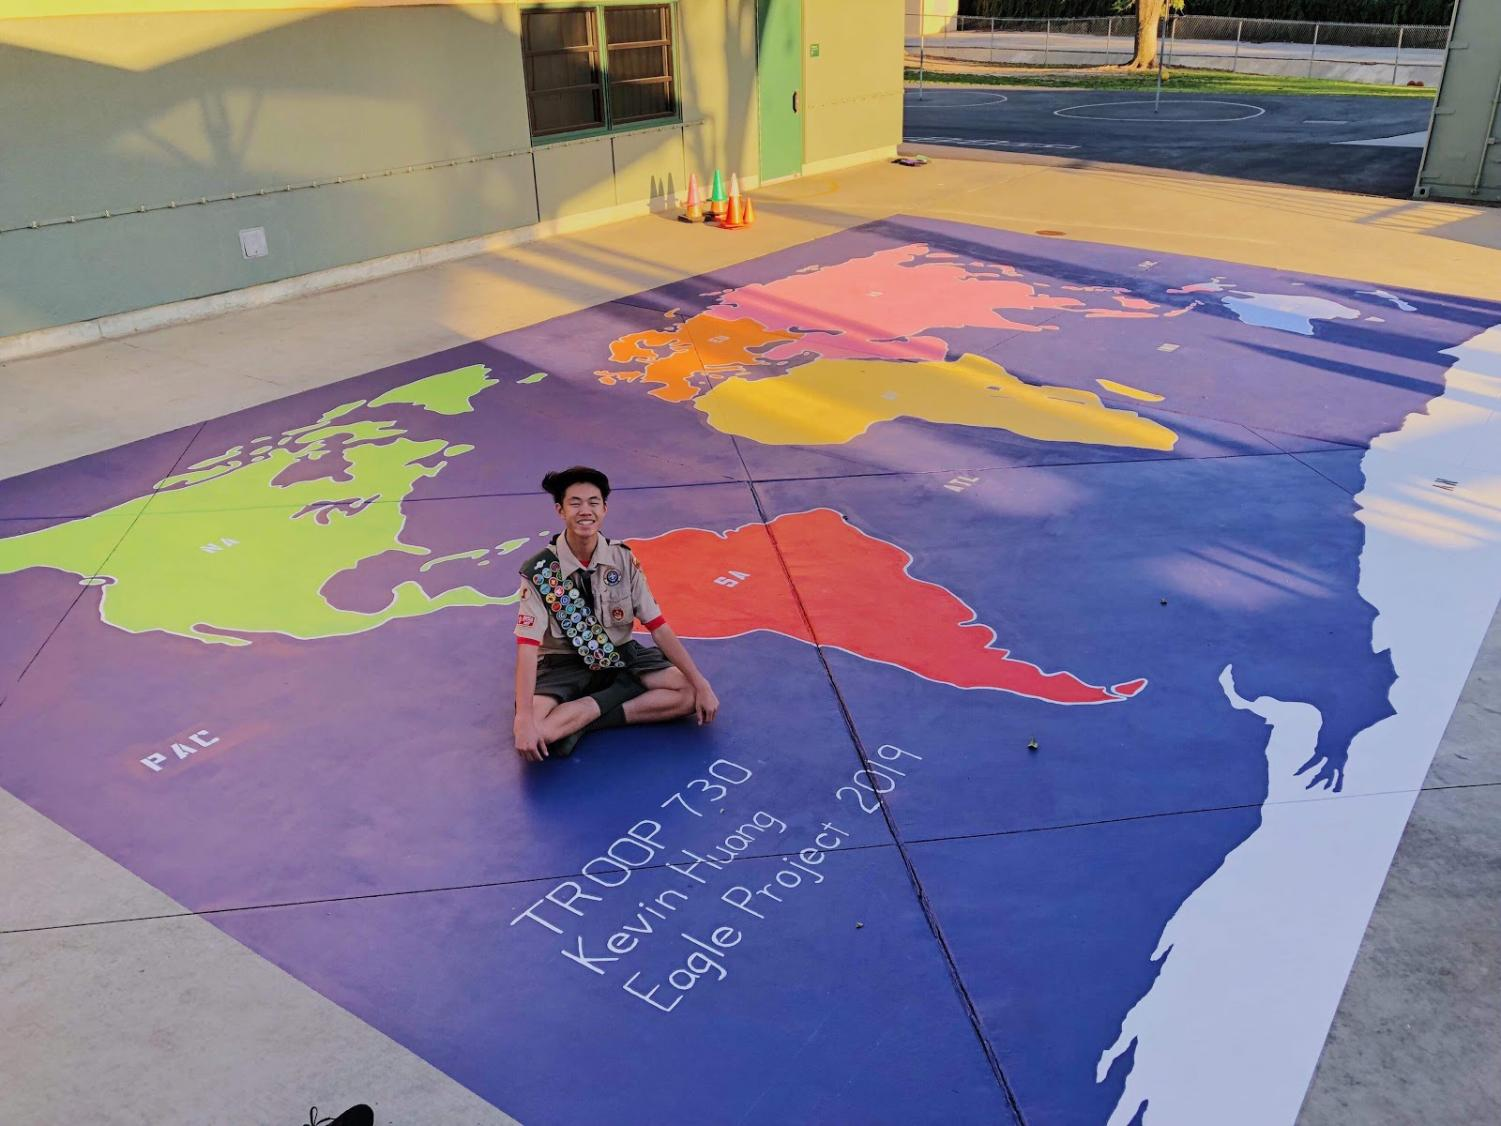 Junior Kevin Huang, along with 30 members from his troop, painted a world map in the lunch area at Evergreen Elementary School for his Eagle project.